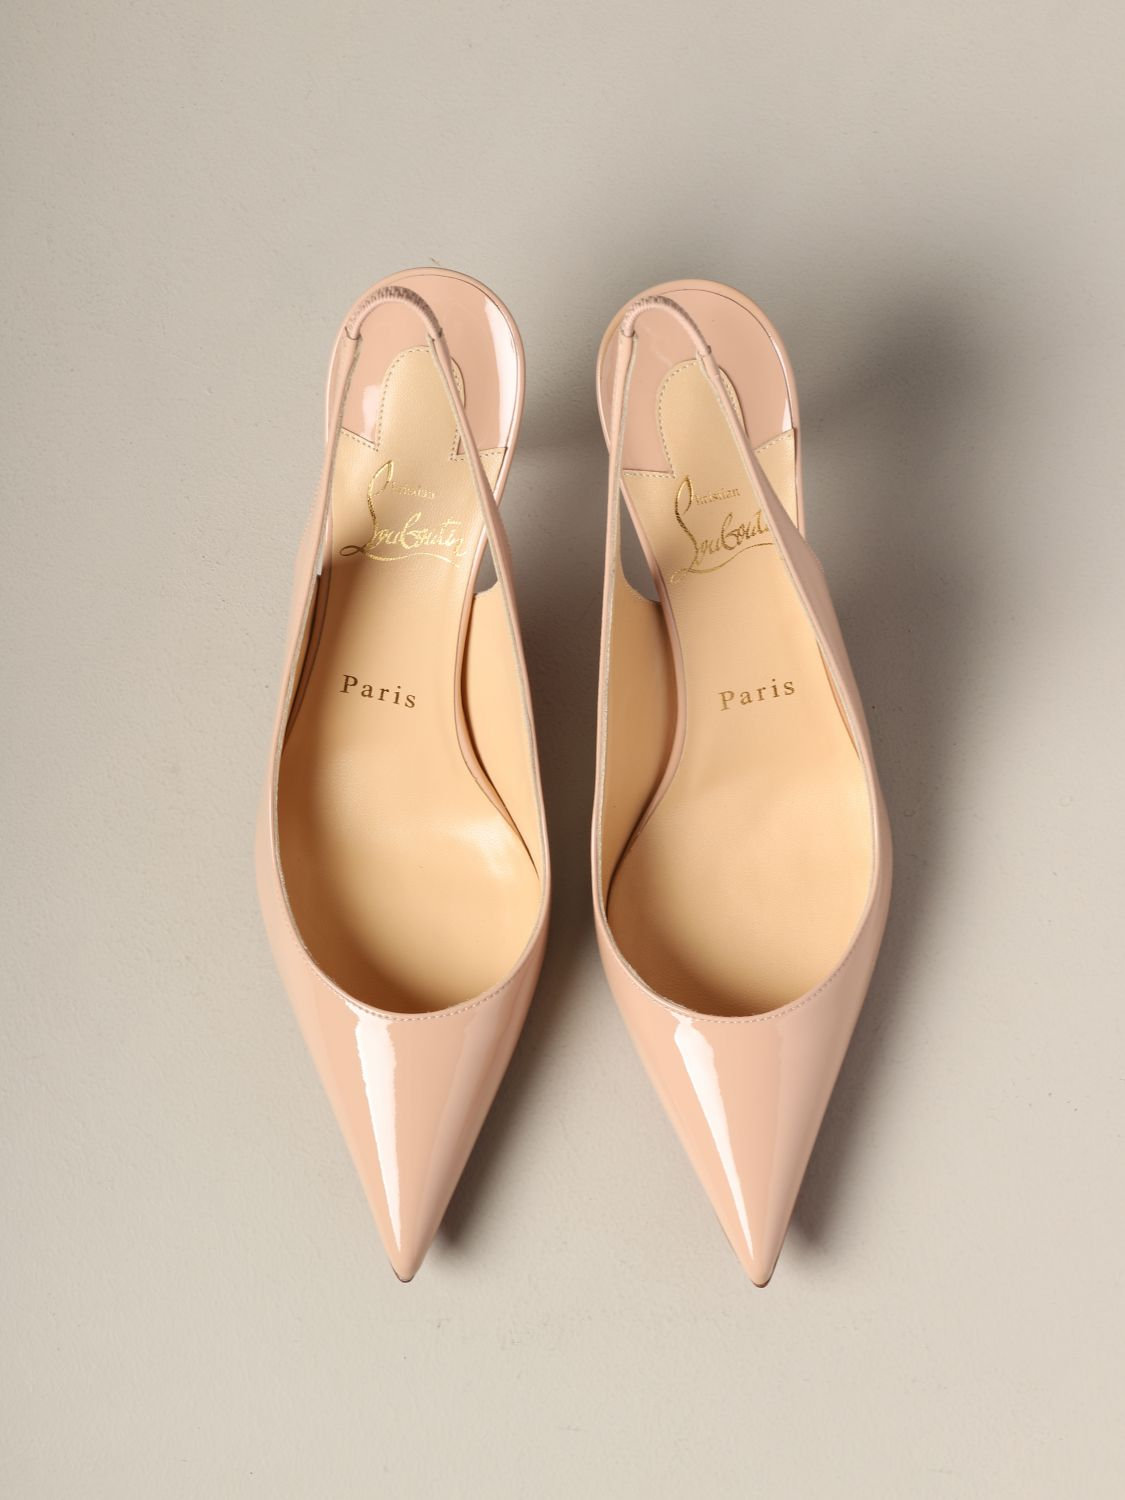 Clare Christian Louboutin patent leather sling back nude 3